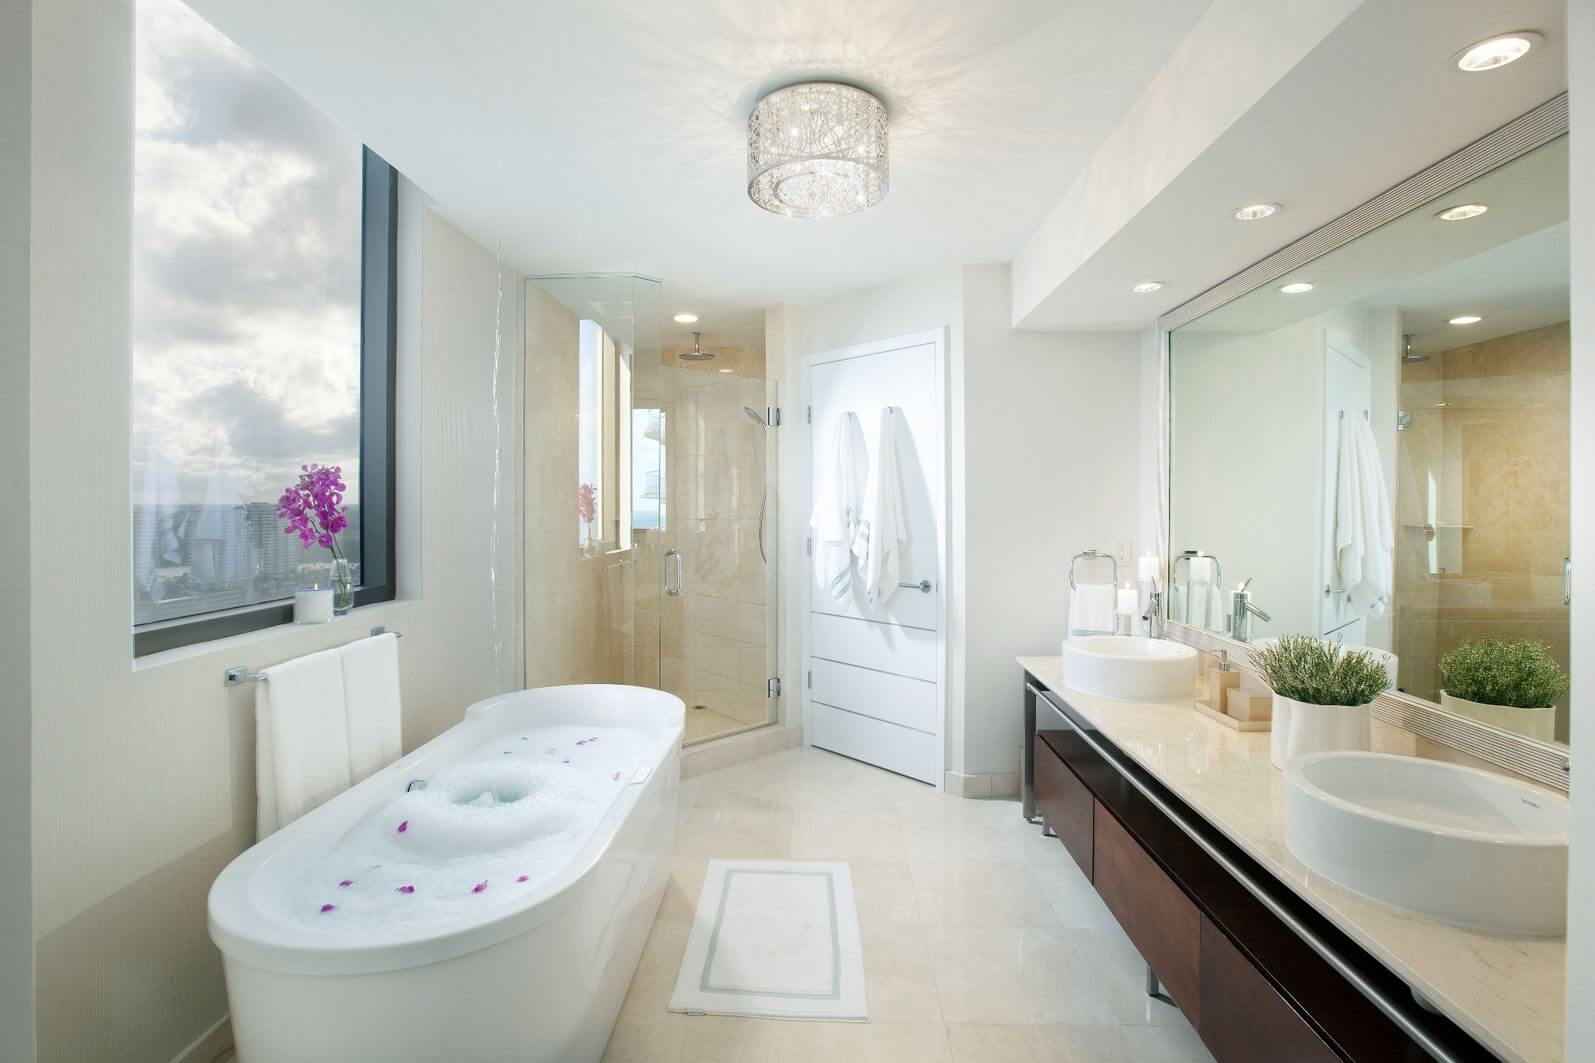 3residential Luxury Bath